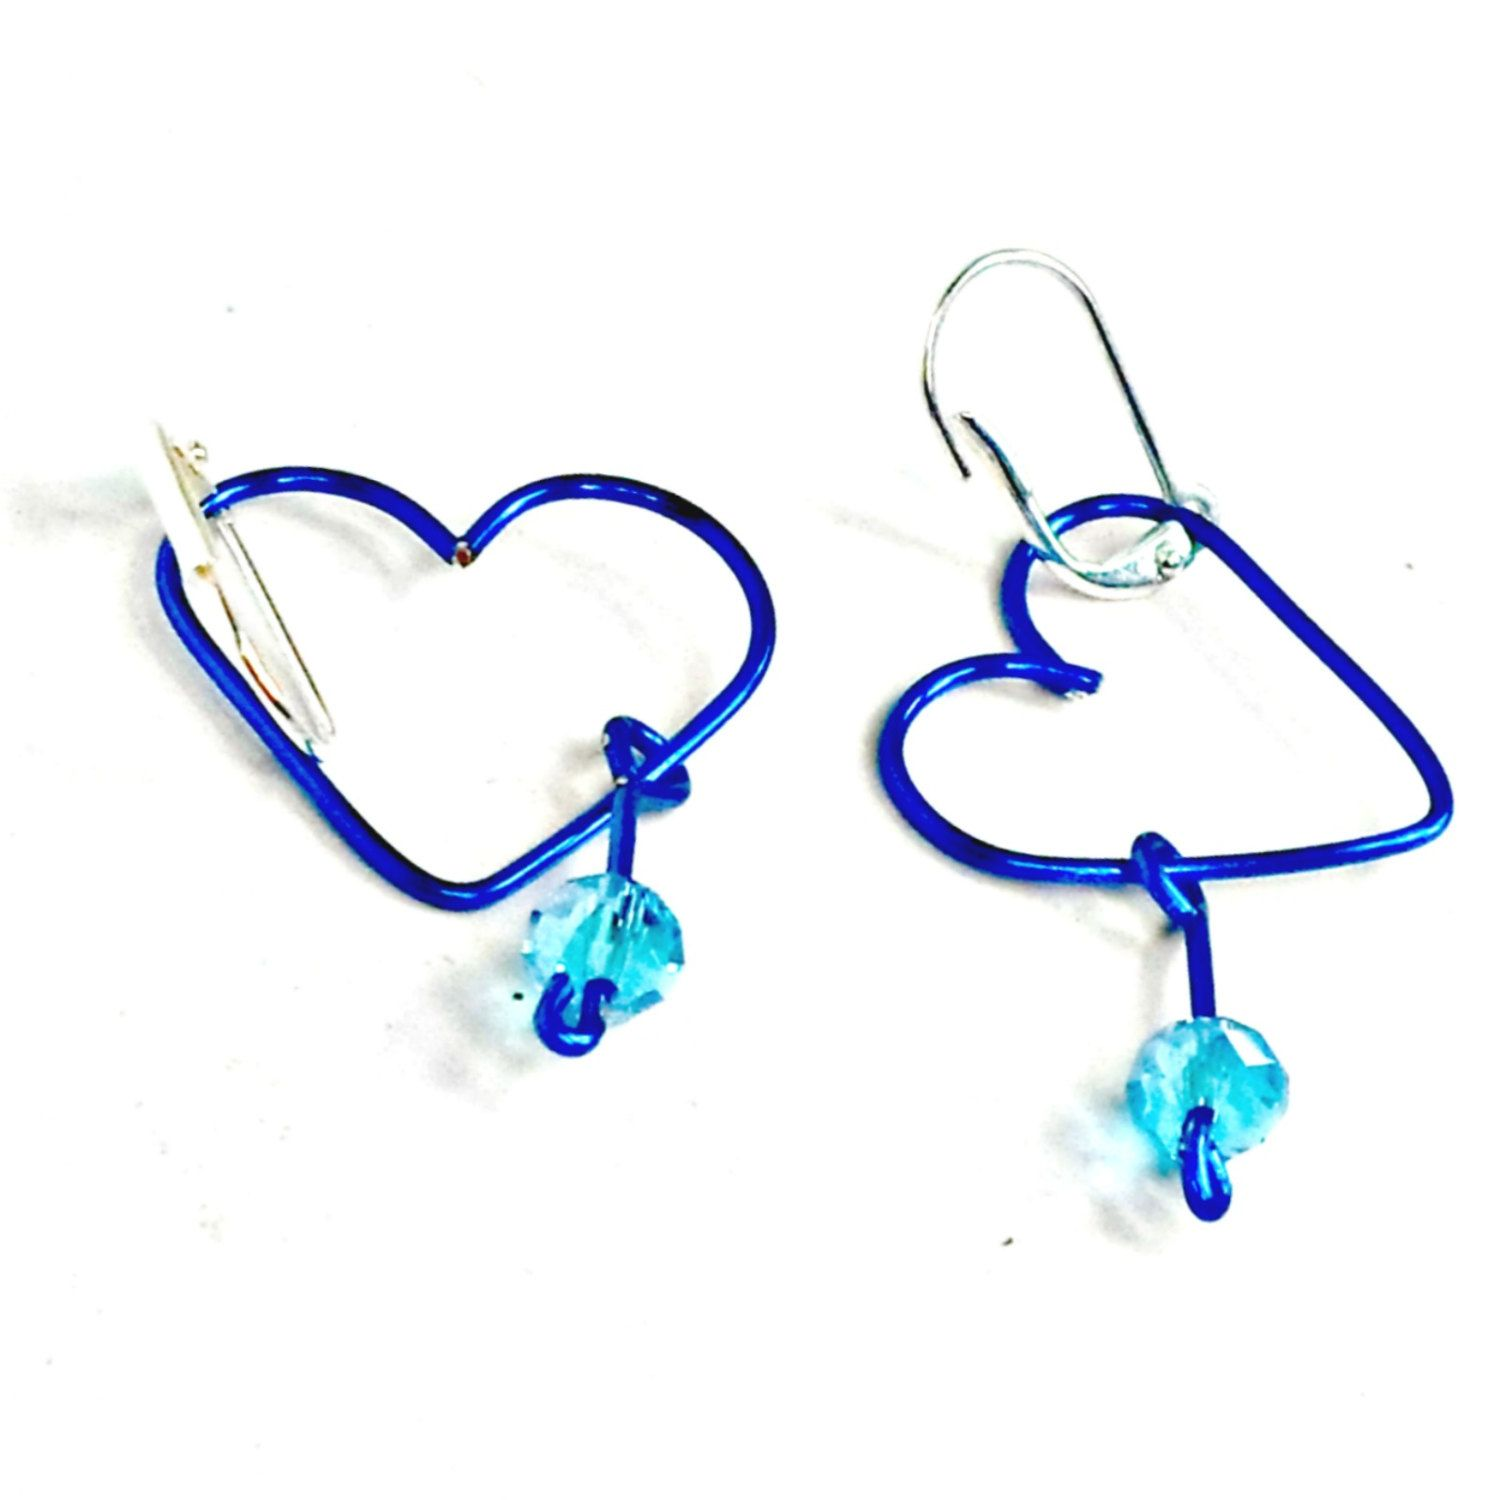 Wirework earrings open heart handmade crystal dangle clip or pierced Pat2 by RememberThis3 on Etsy